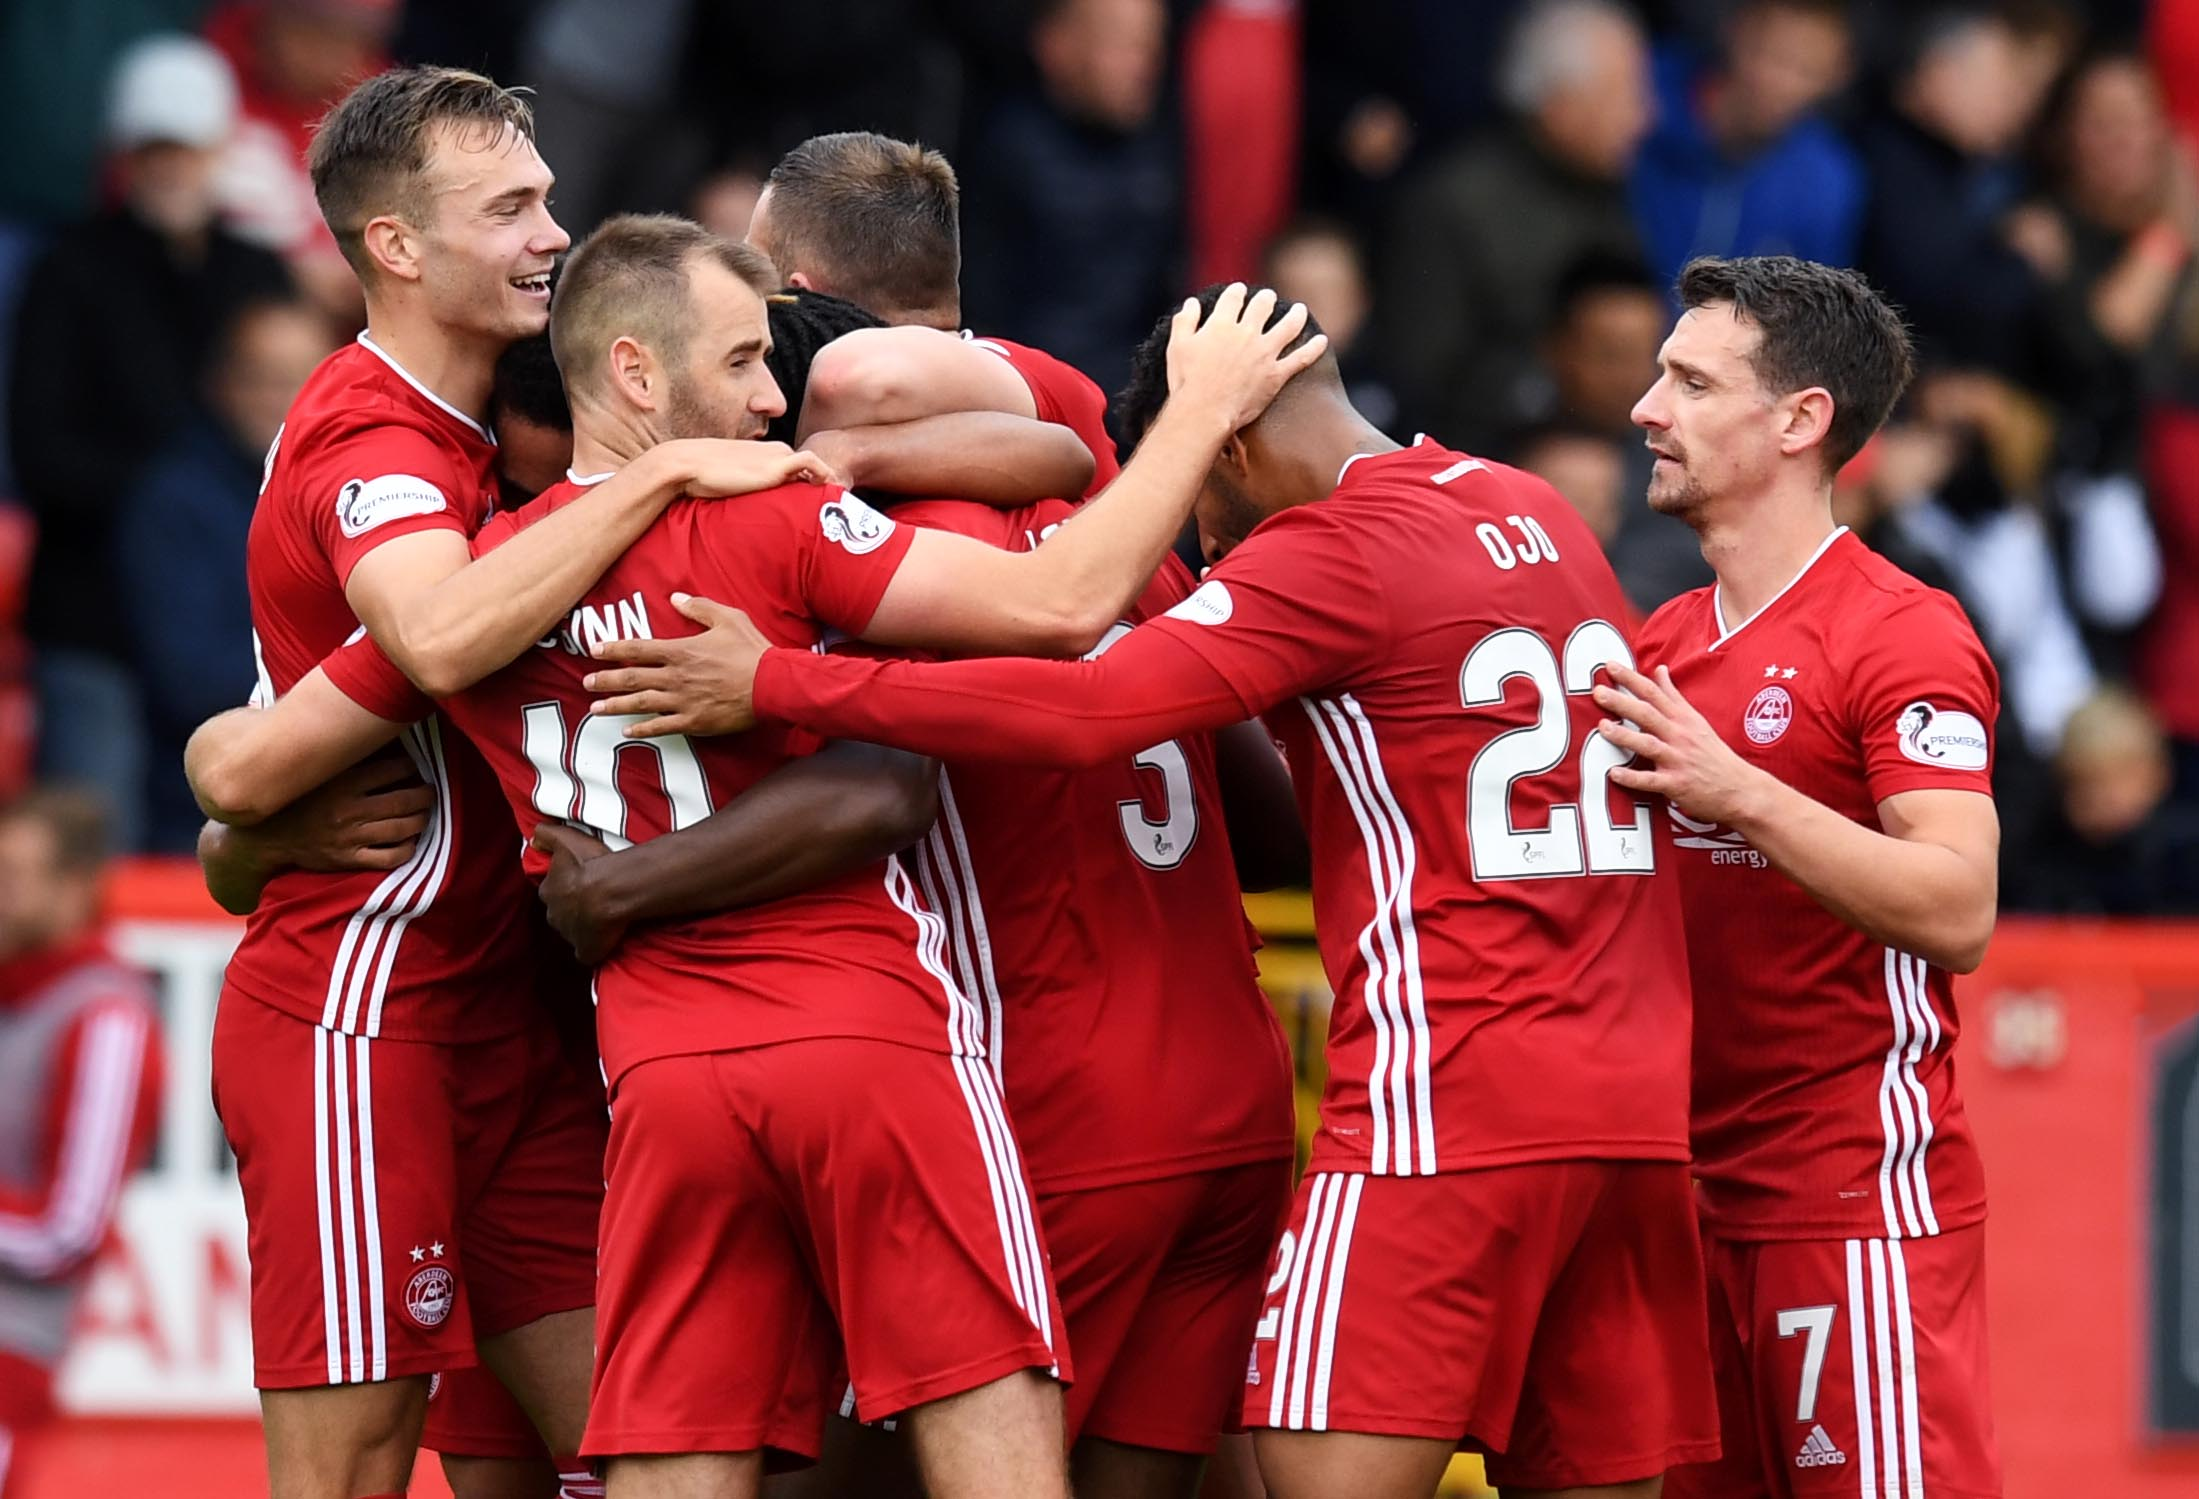 31/08/2019 Aberdeen defeated County 3-0 earlier this season